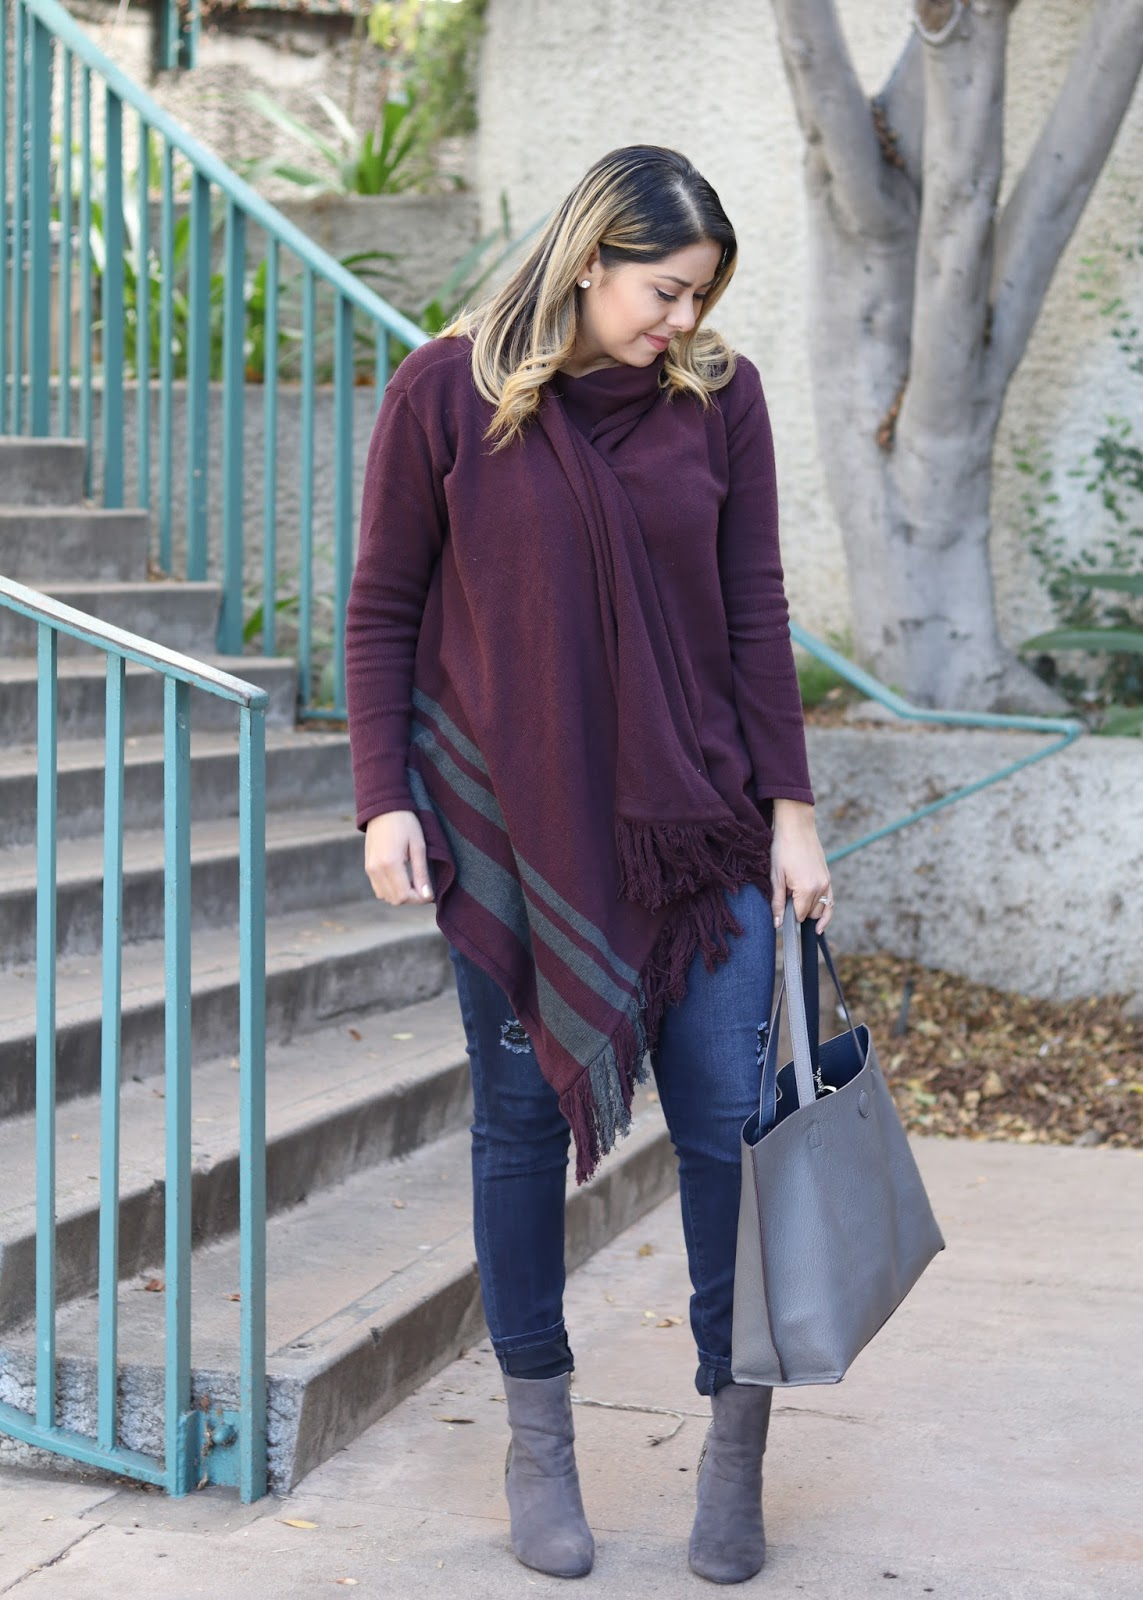 Casual Sweater Outfit, San Diego Fashion Blogger, San diego style blogger, top san diego bloggers